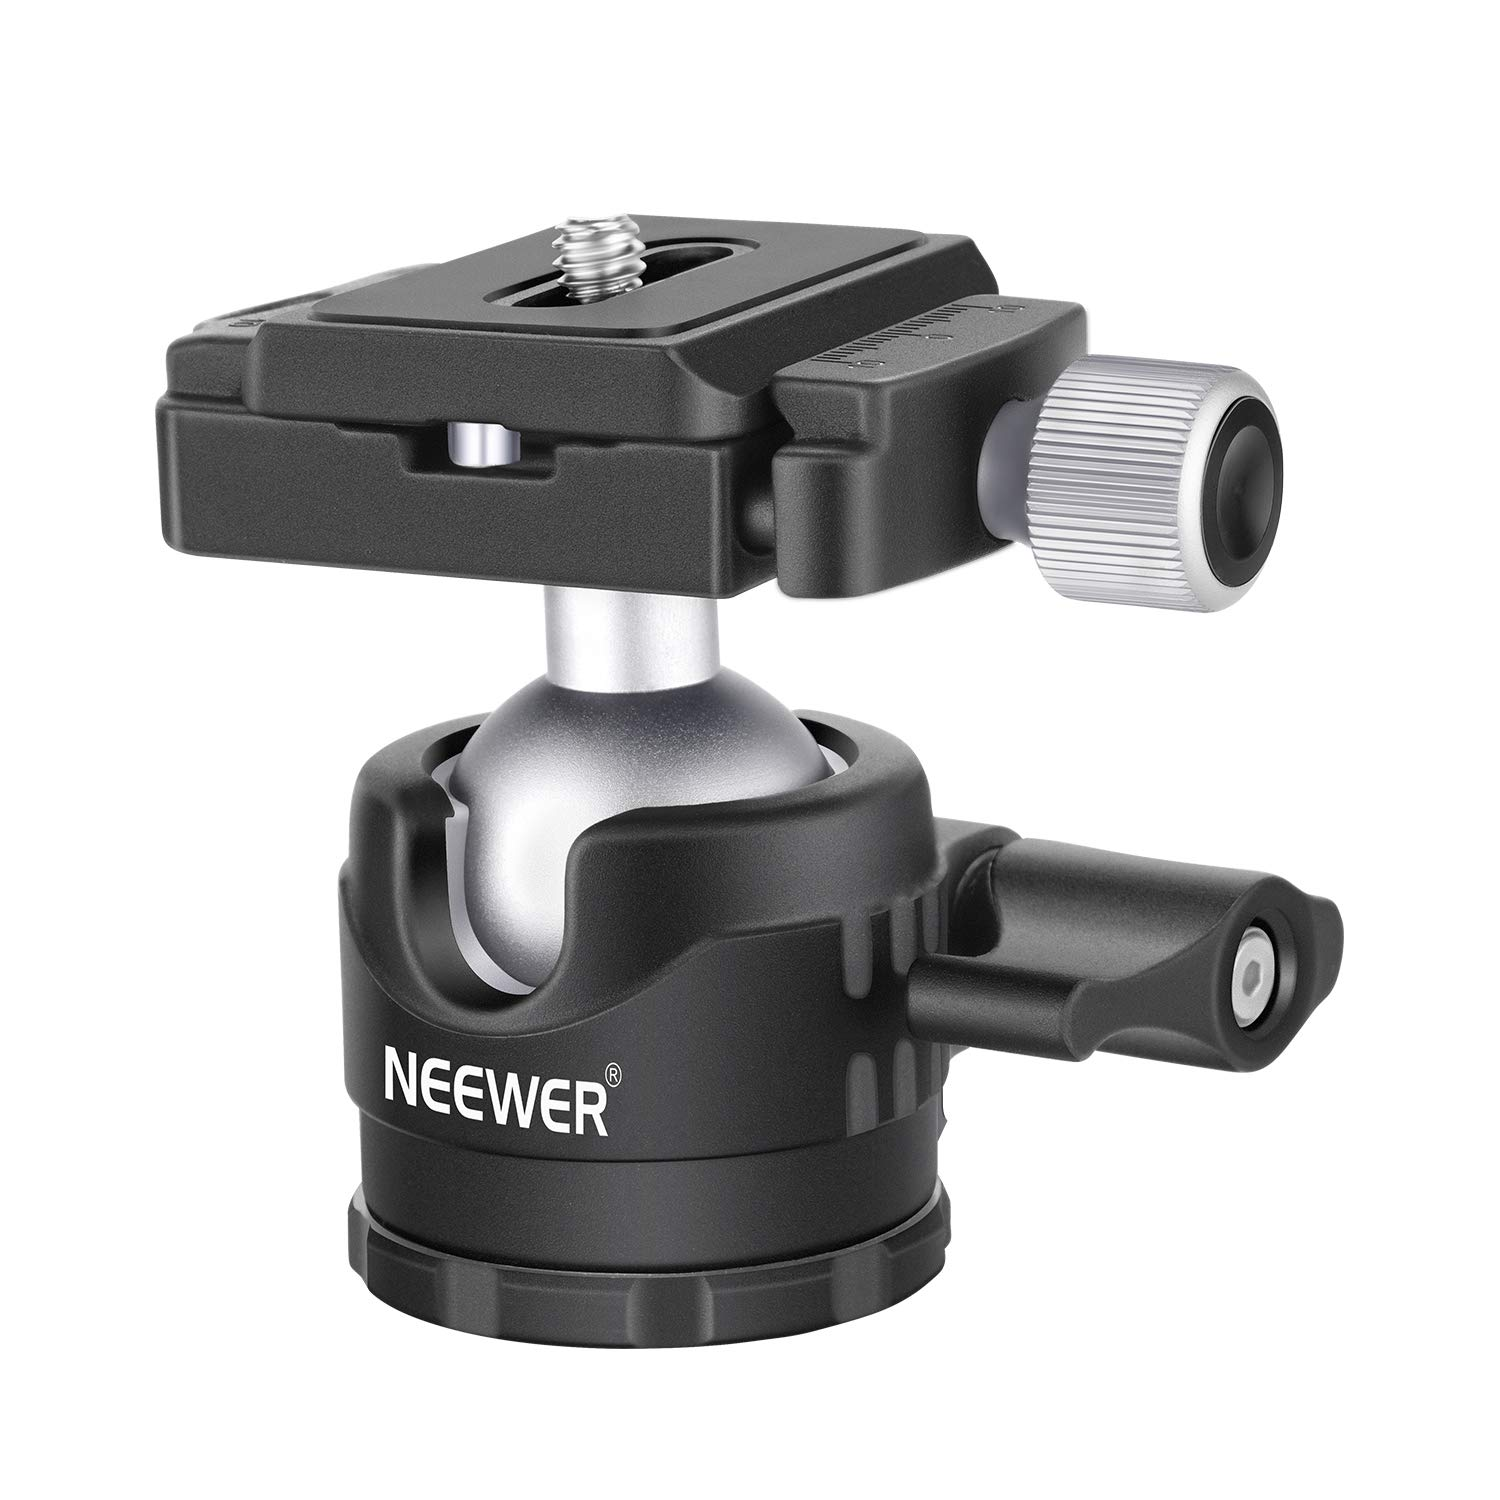 Neewer Low Profile Rotatable Cameras Monopods